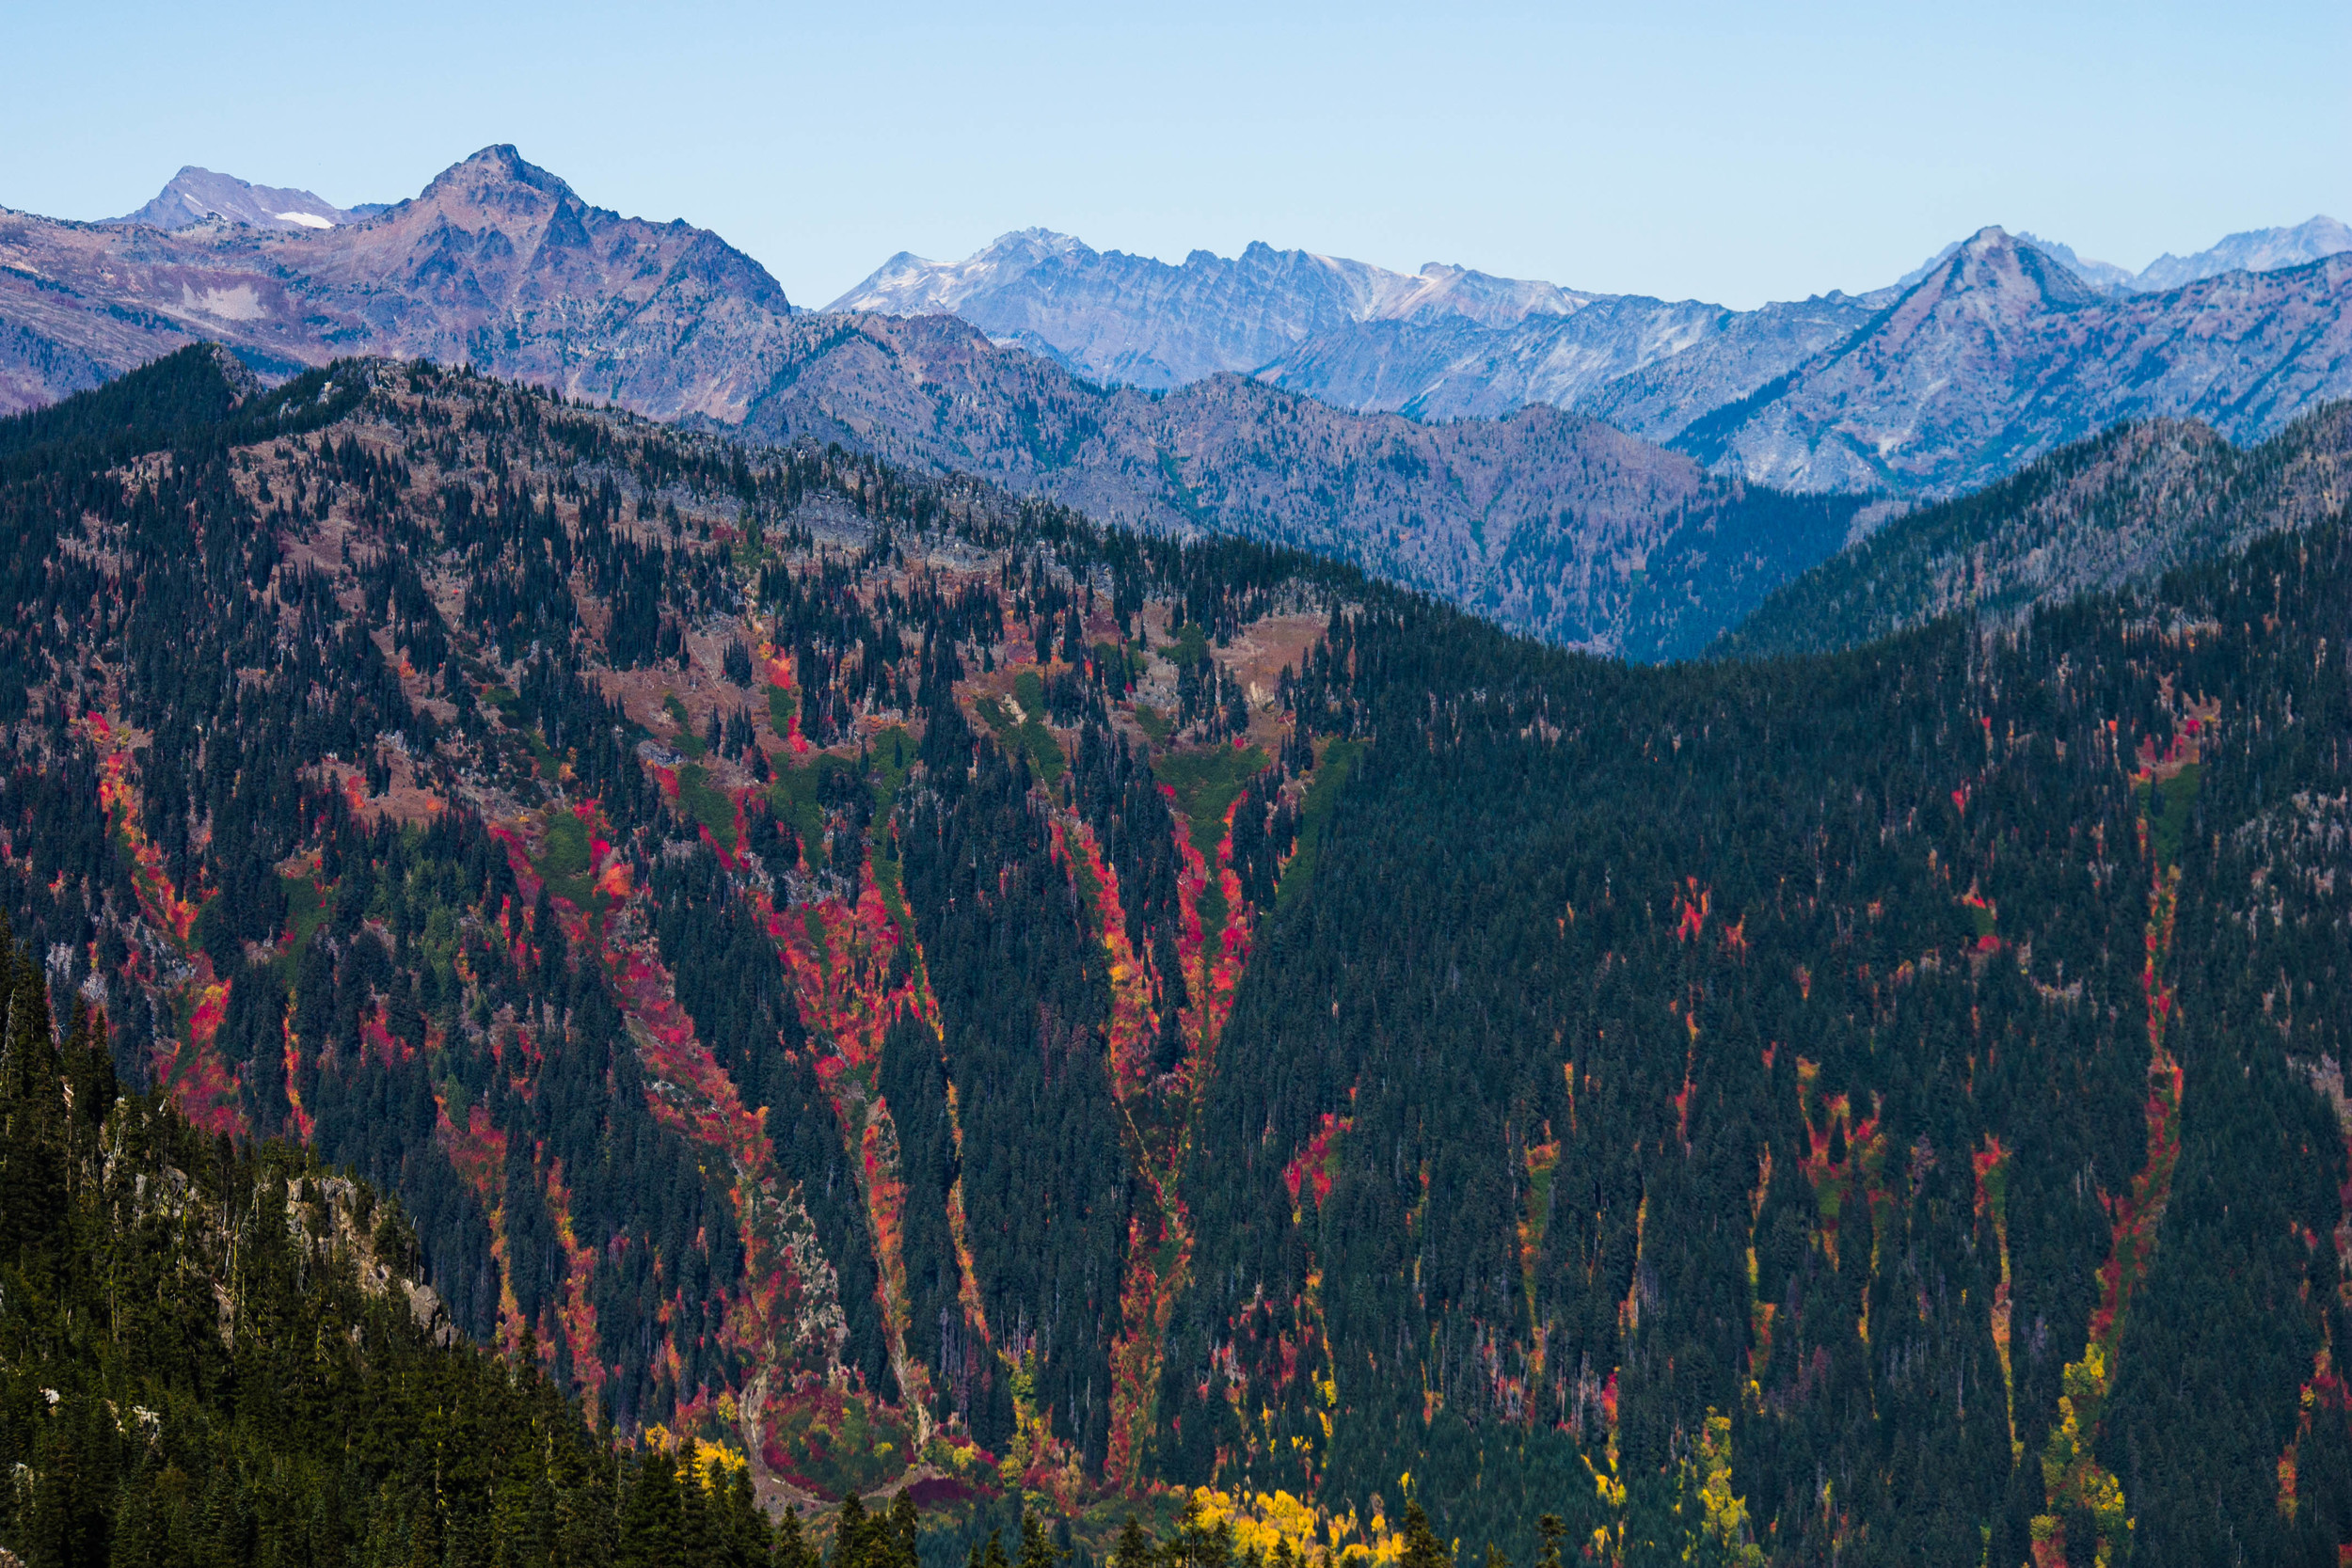 Glorious fall color on display from across Theseus Lake